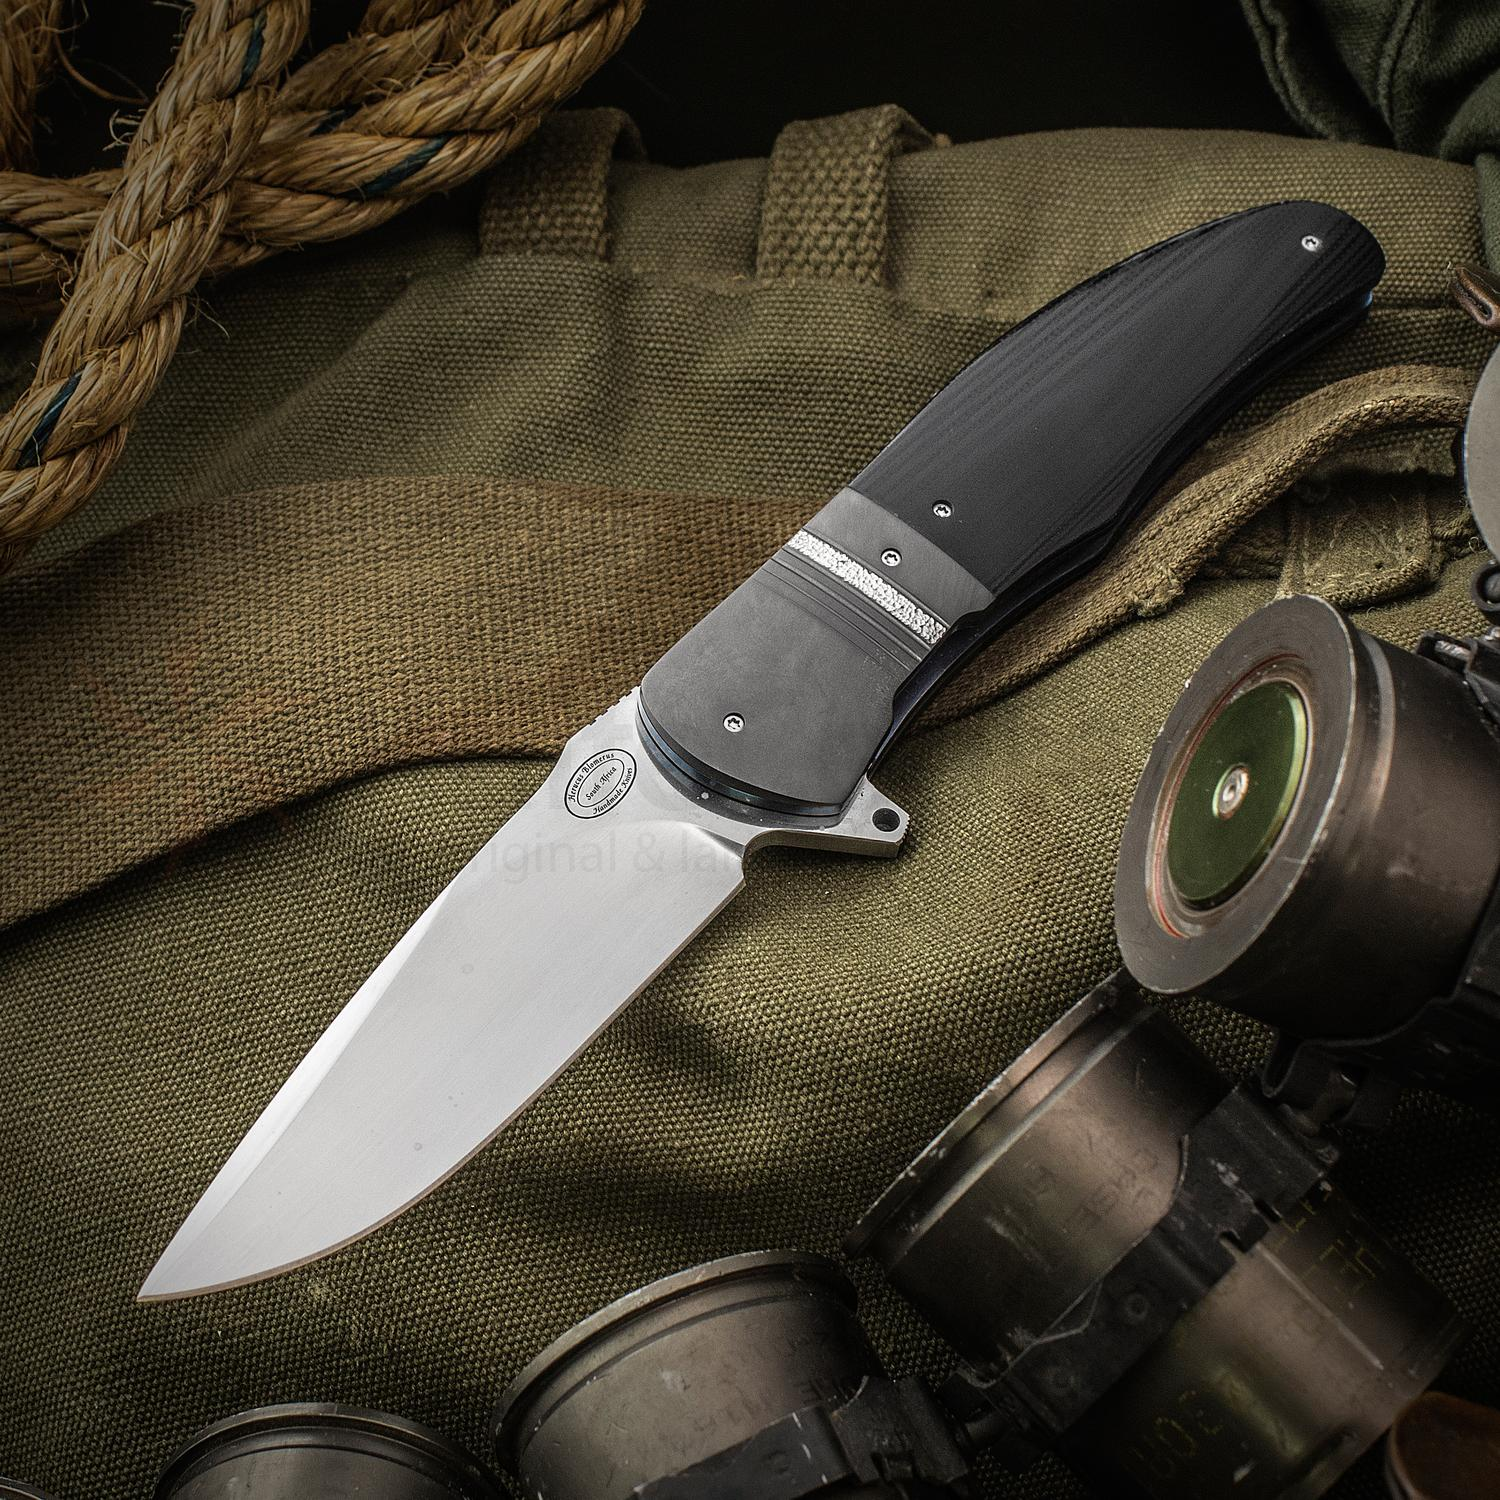 Herucus Blomerus Custom LL 13 Flipper 3.625 inch N690 Hand Rubbed Satin Blade, Black G10 Handles with Textured Zirconium Bolsters